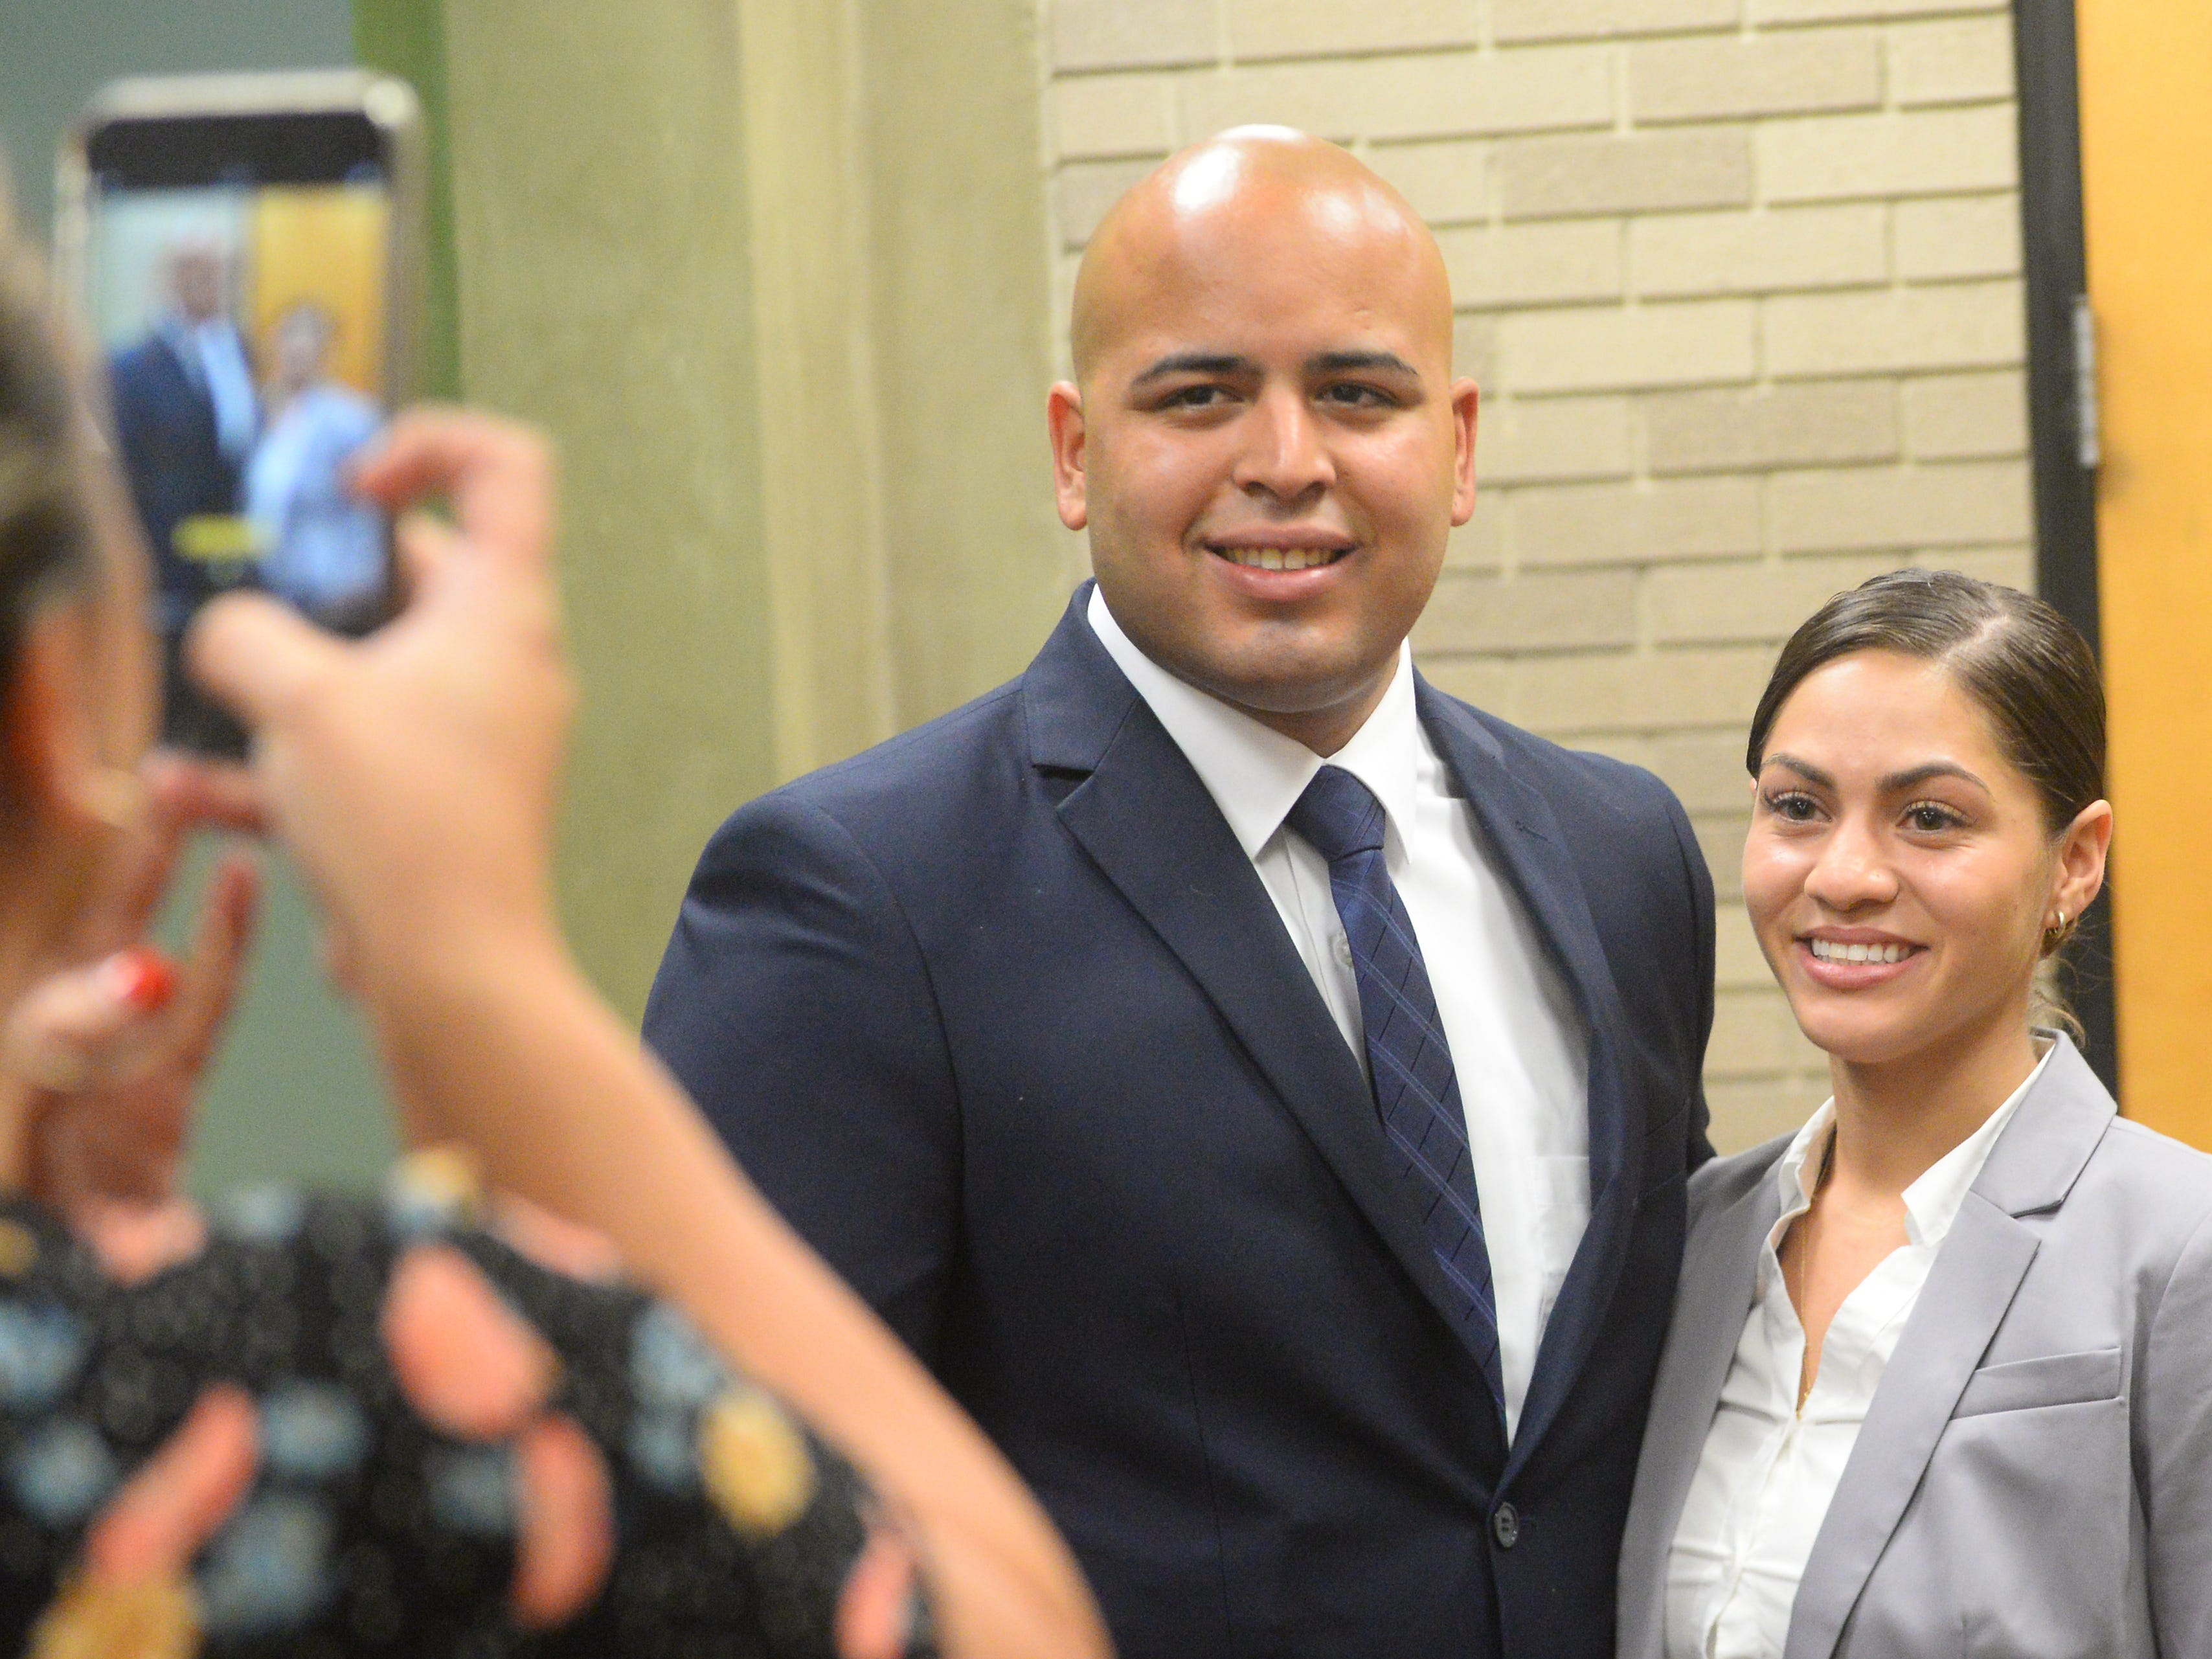 Kyle J. Arbona and Kaylene Cosme, two of three new Vineland Police recruits, pose for photos after being sworn in at City Hall on Thursday, August 2.